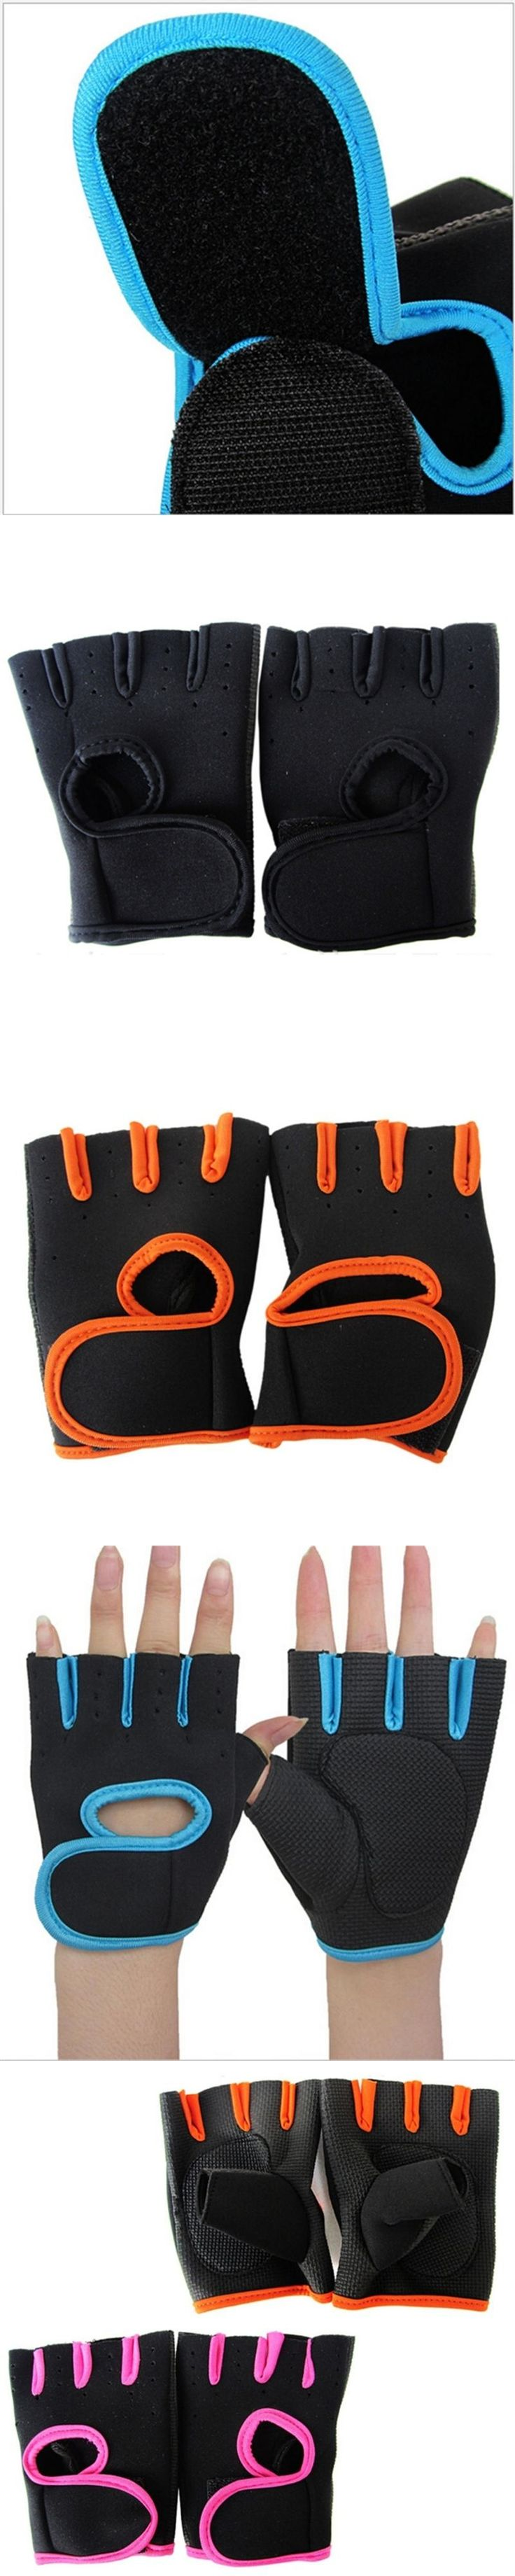 Men Women's Fitness Exercise Workout Weight Lifting Gloves